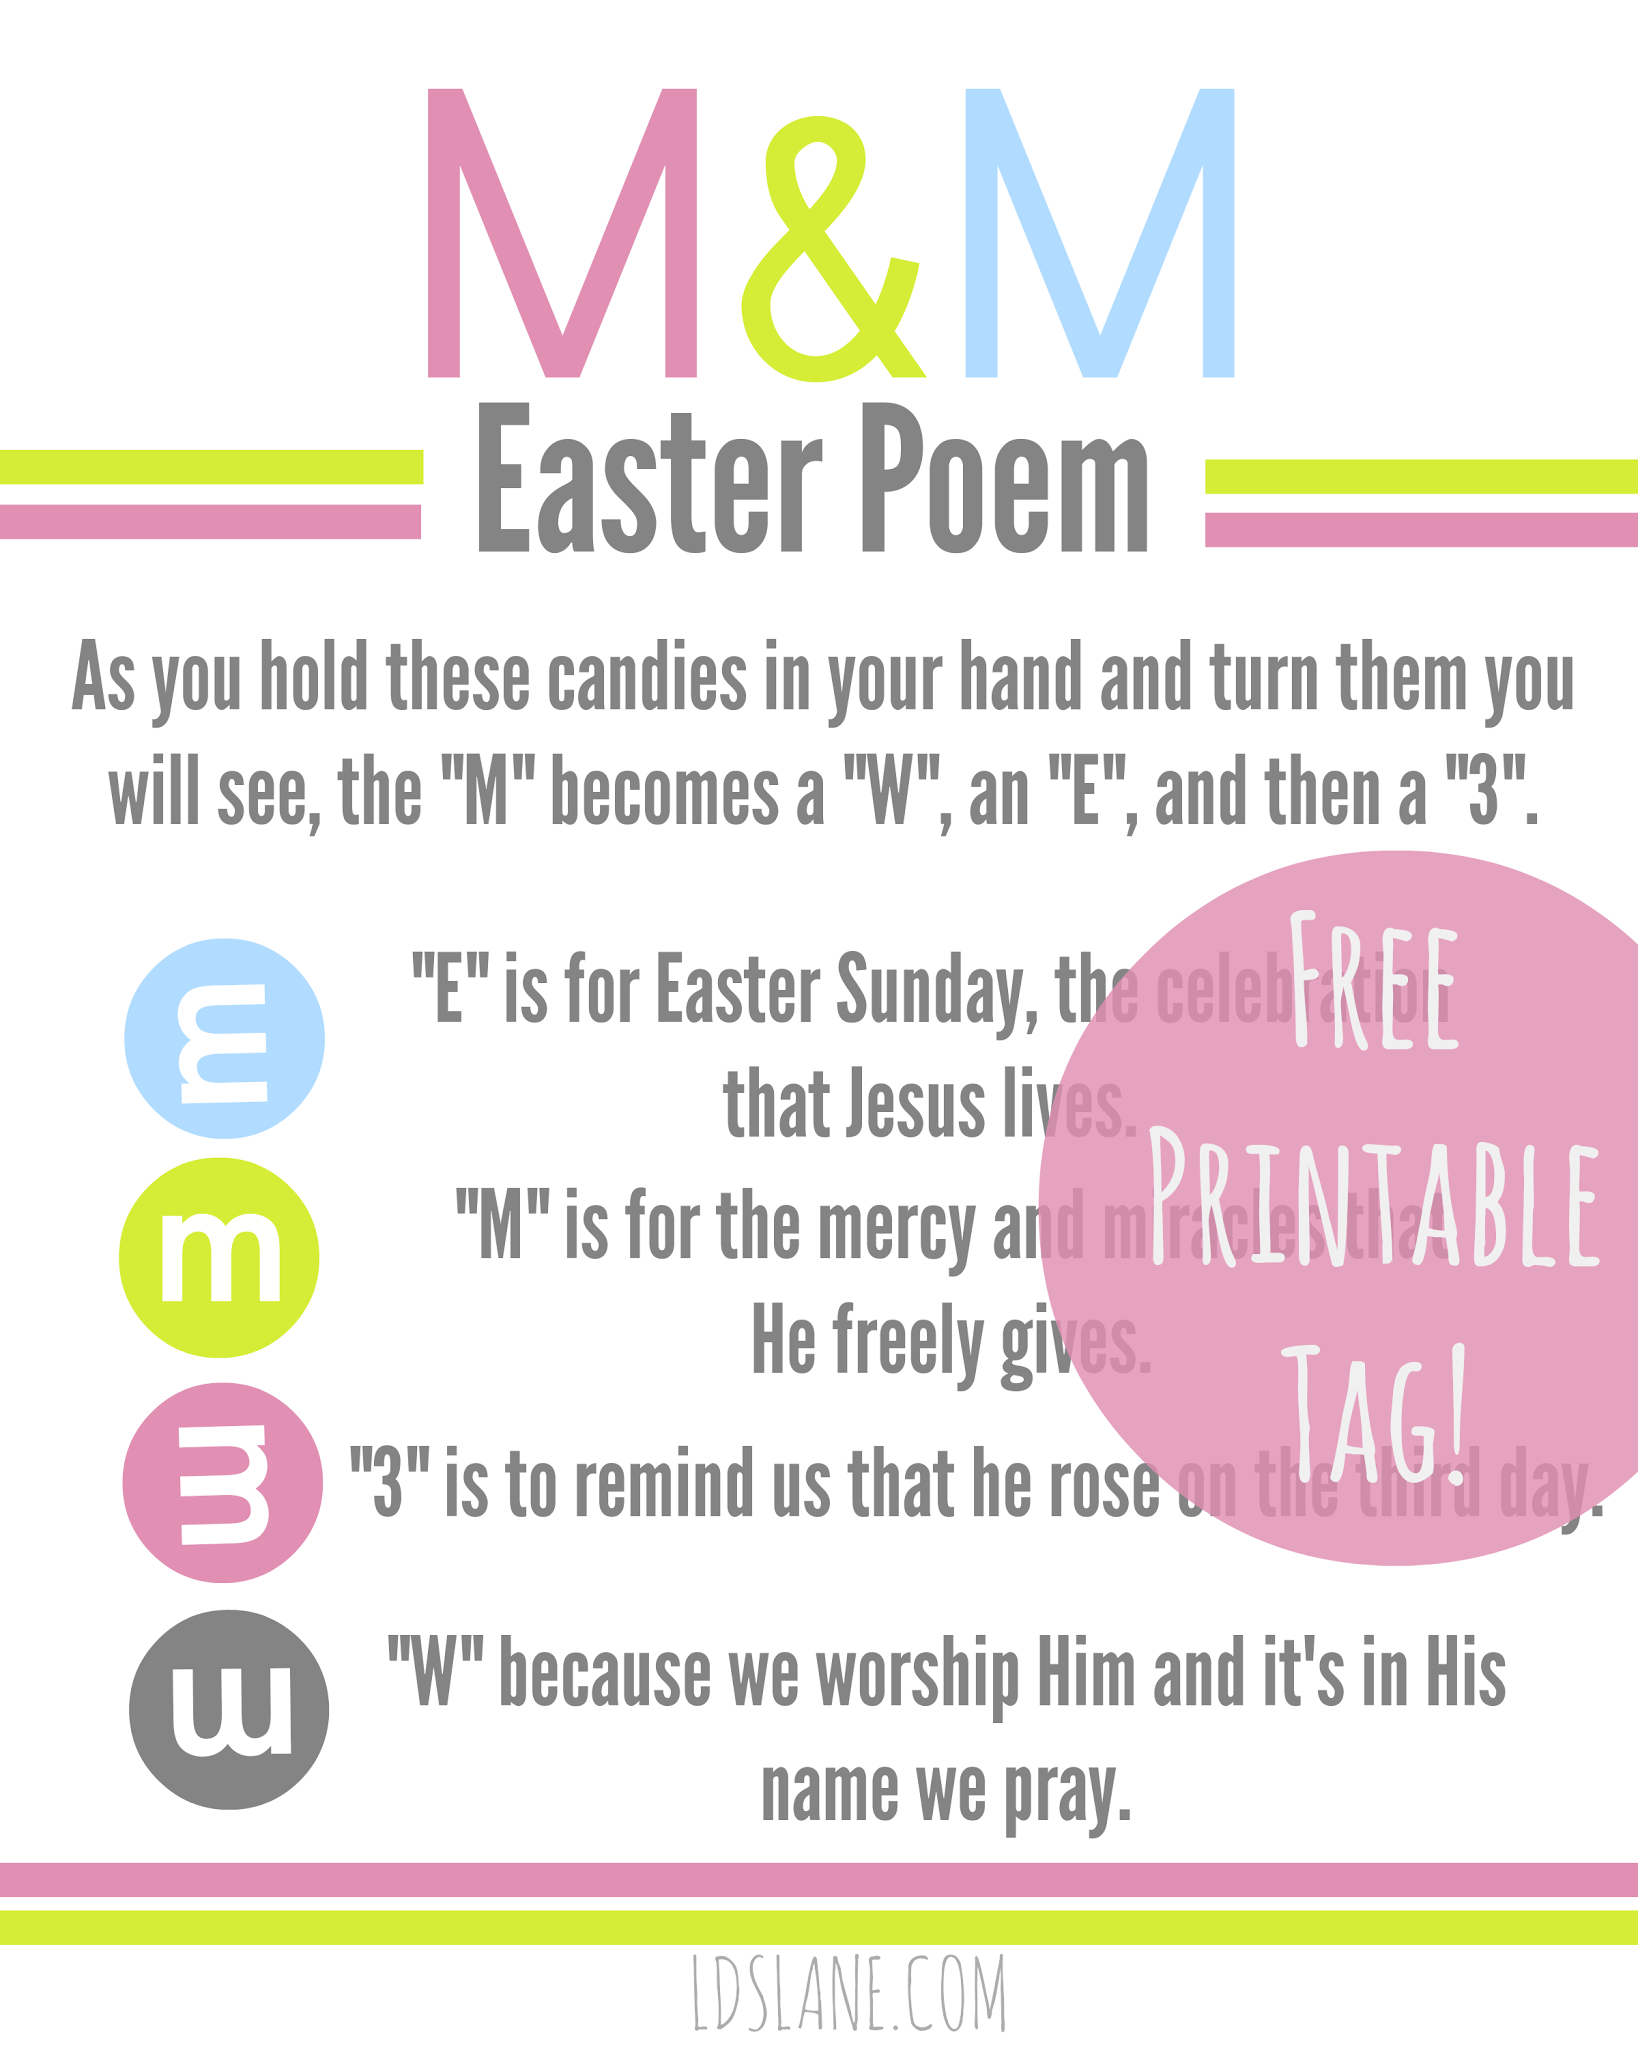 M&M Easter Poem - free printable tags ldslane.com